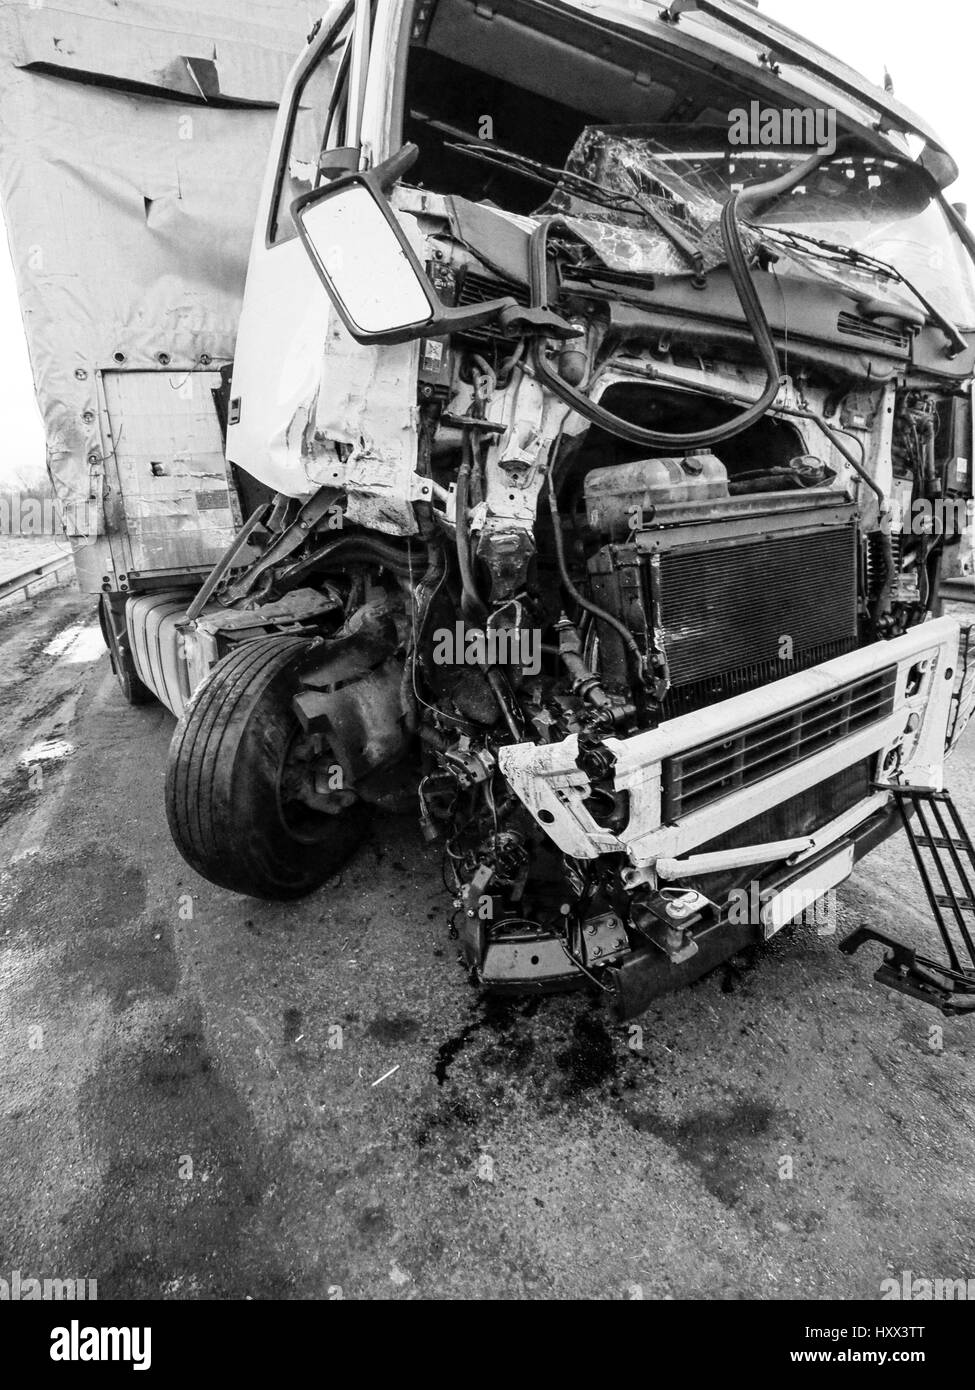 Cabin of a truck injured during an accident Stock Photo